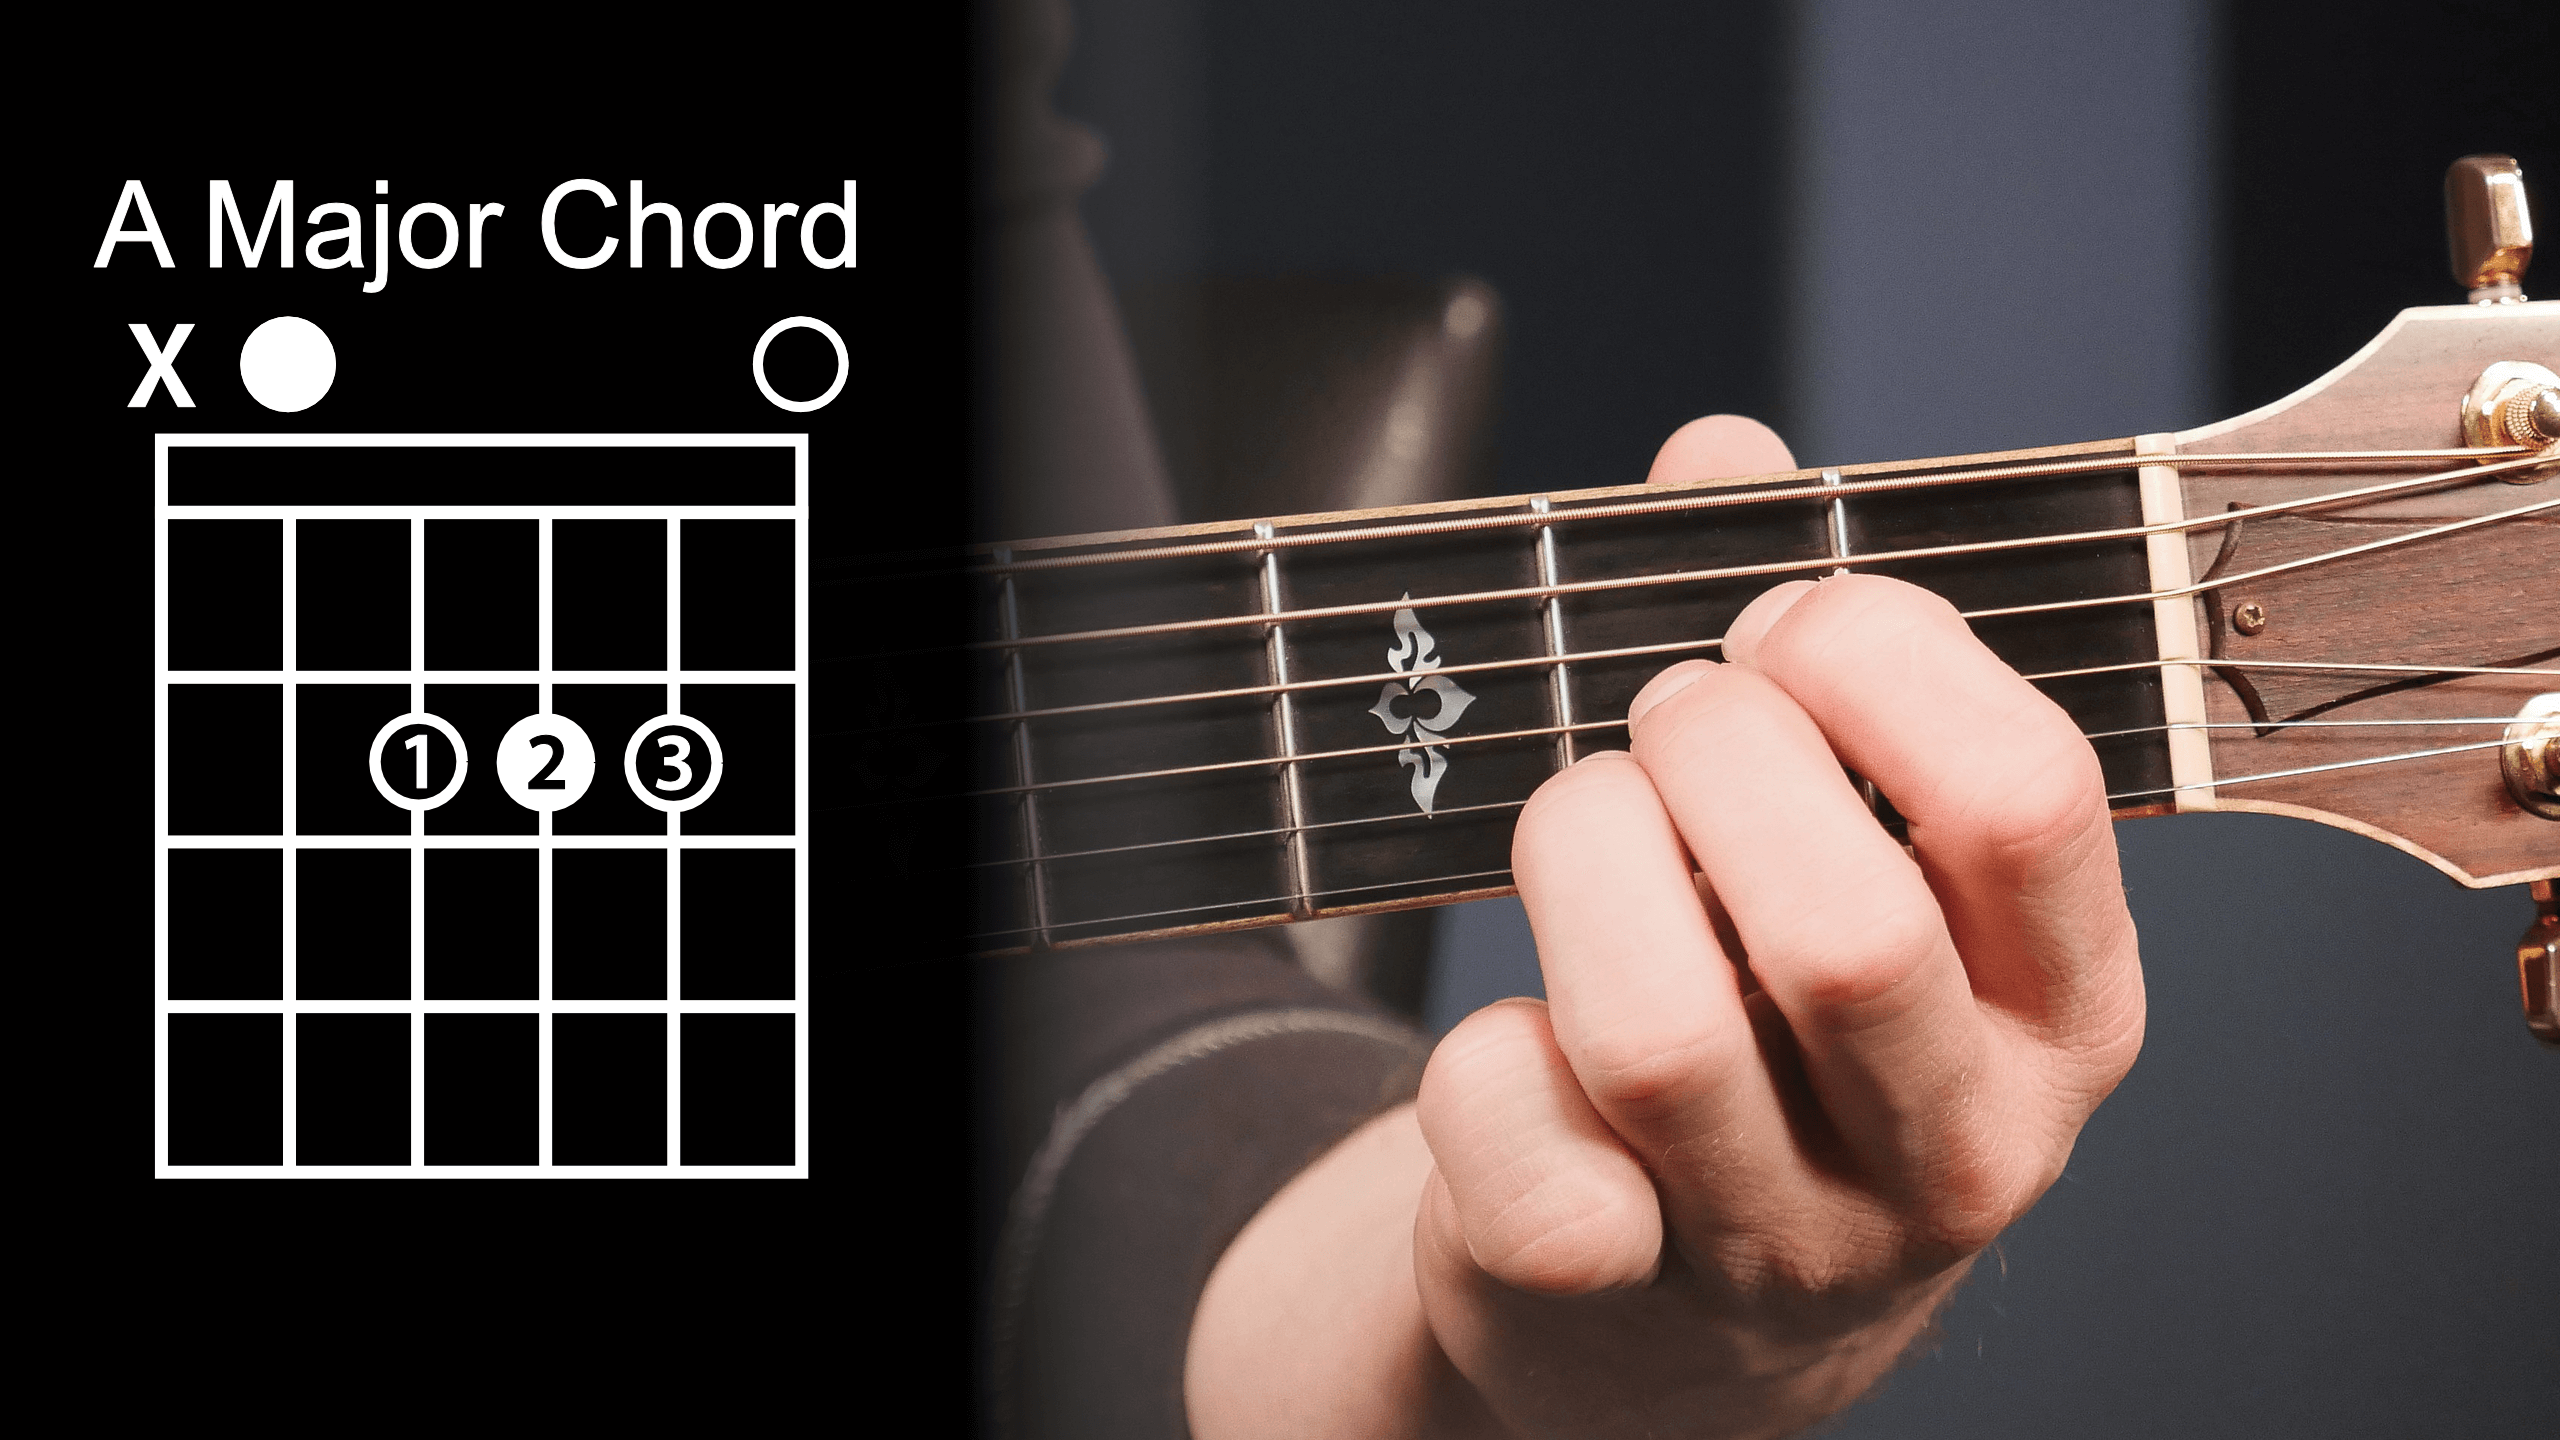 A Major Chord Diagram